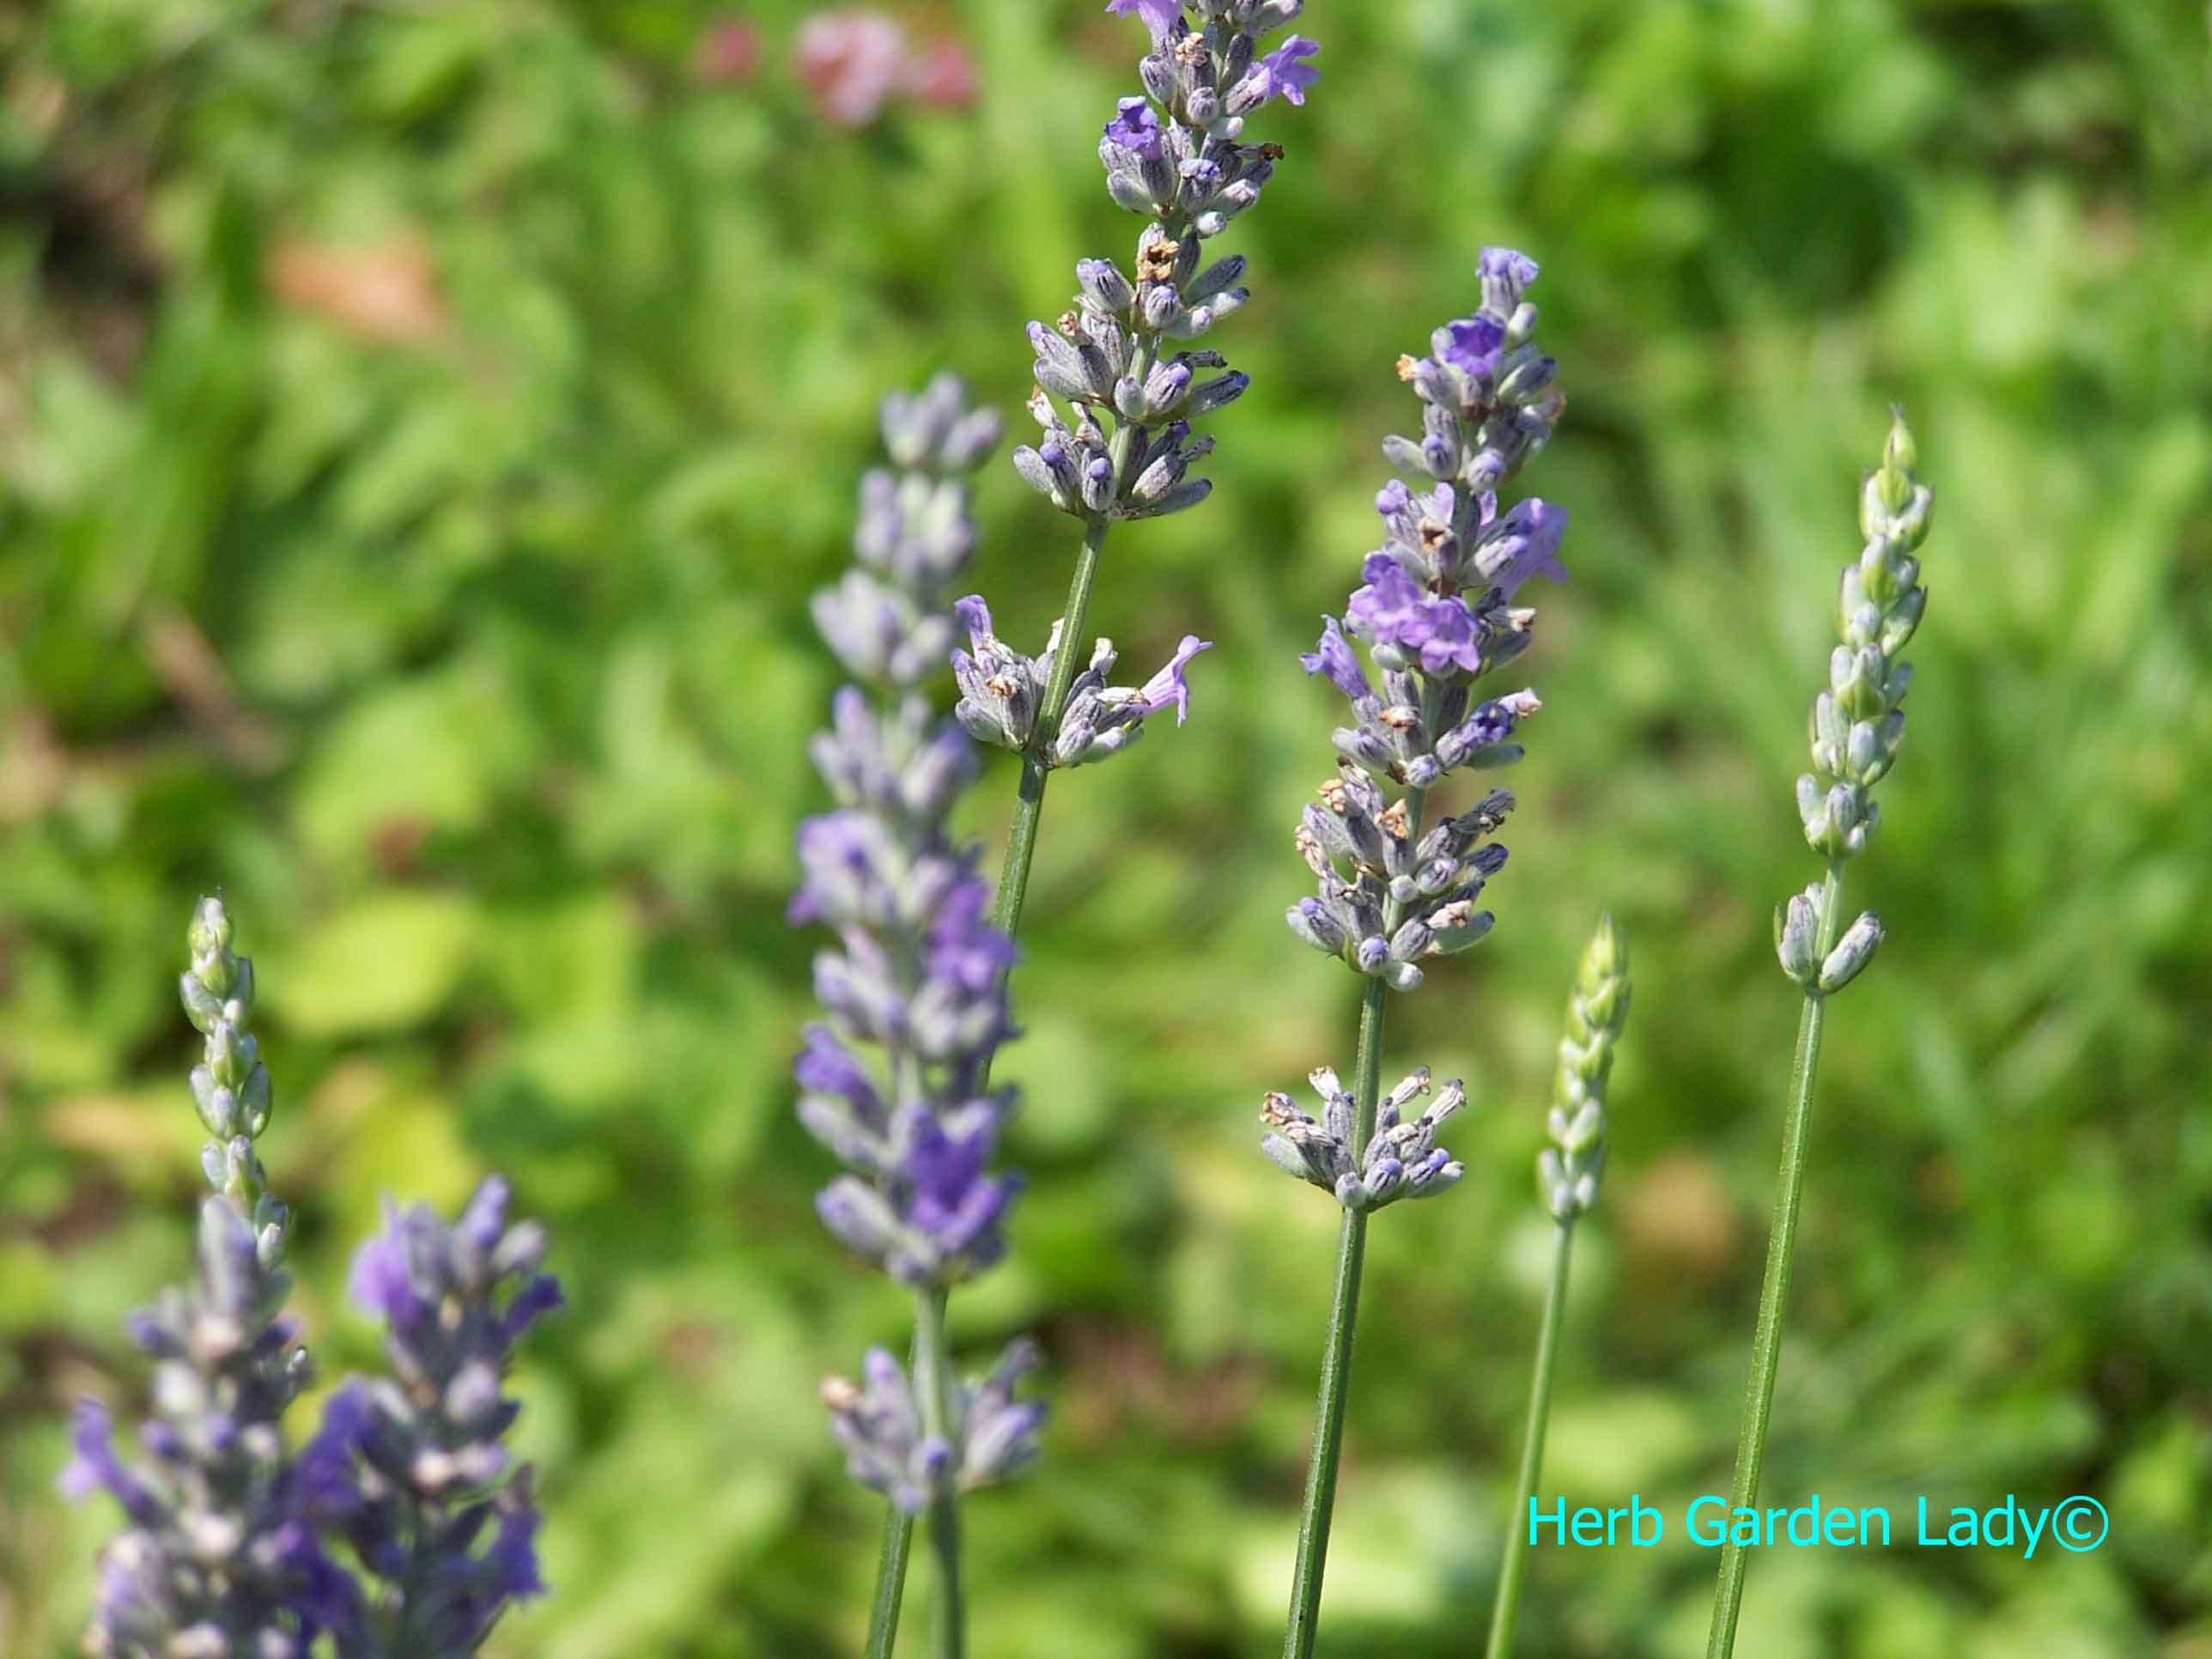 Lavender is great for making lavender wreaths and crafty items.